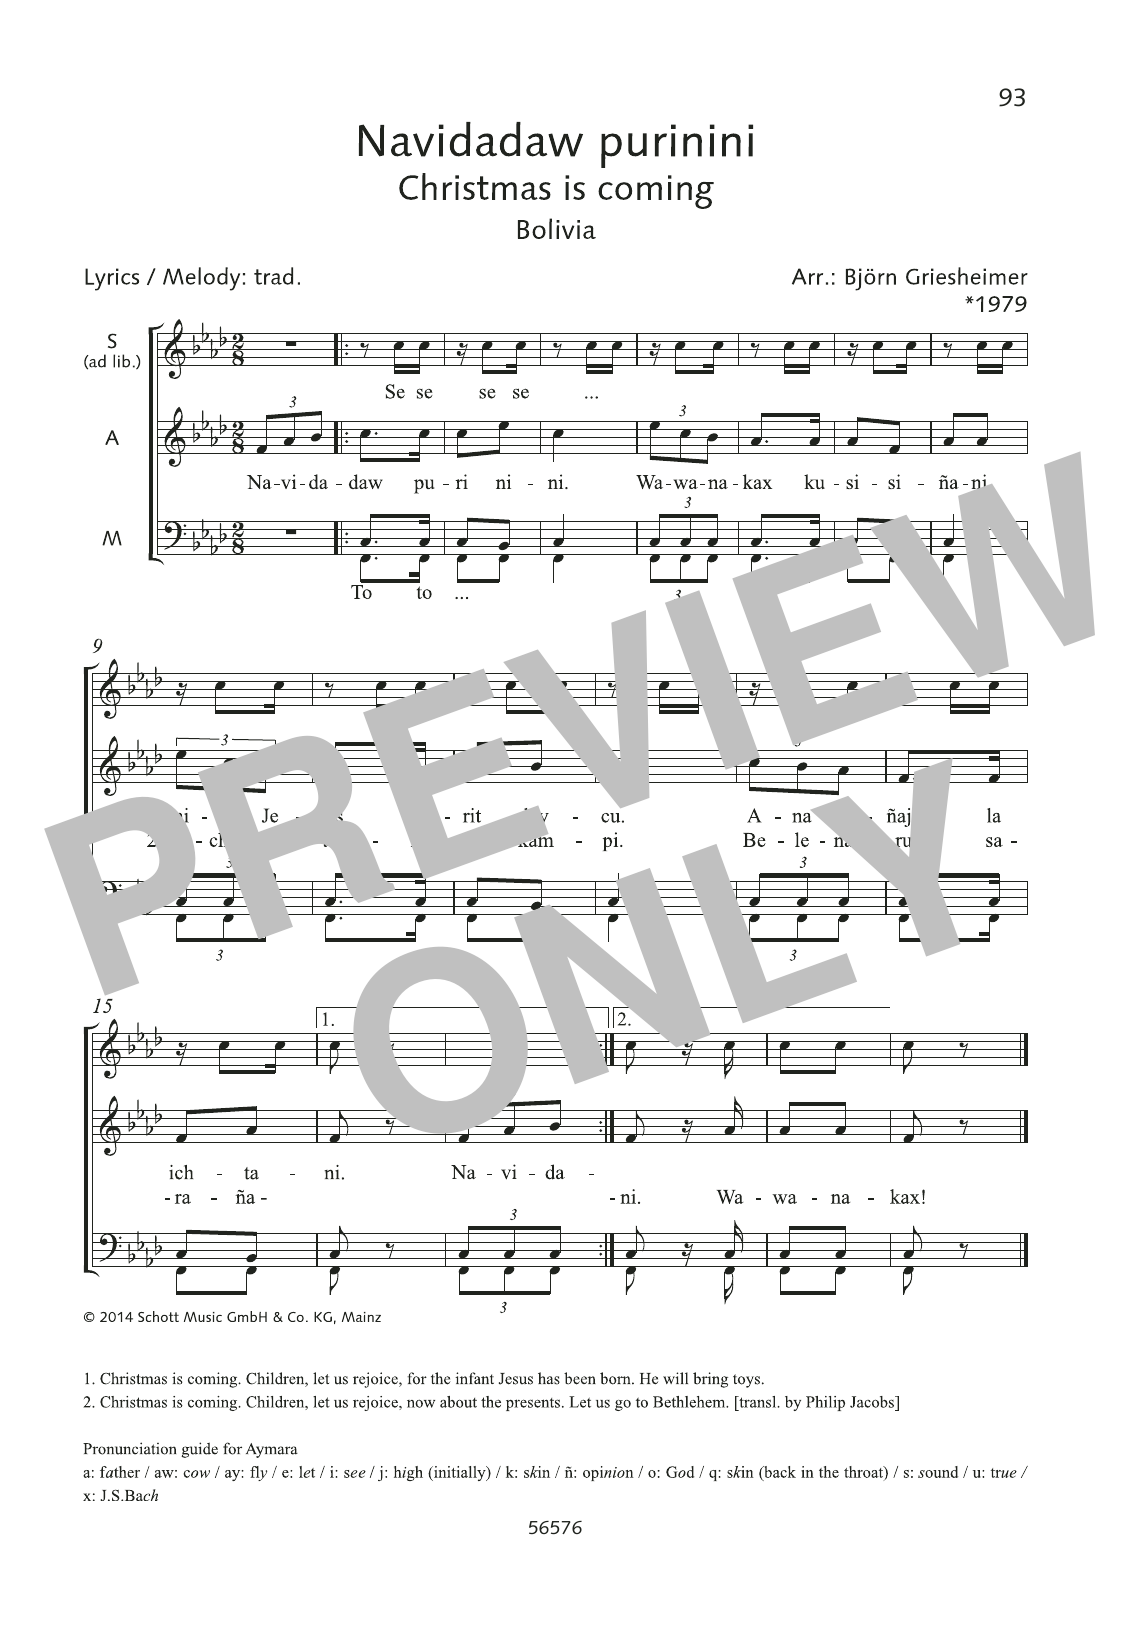 Navidadaw purinini Sheet Music